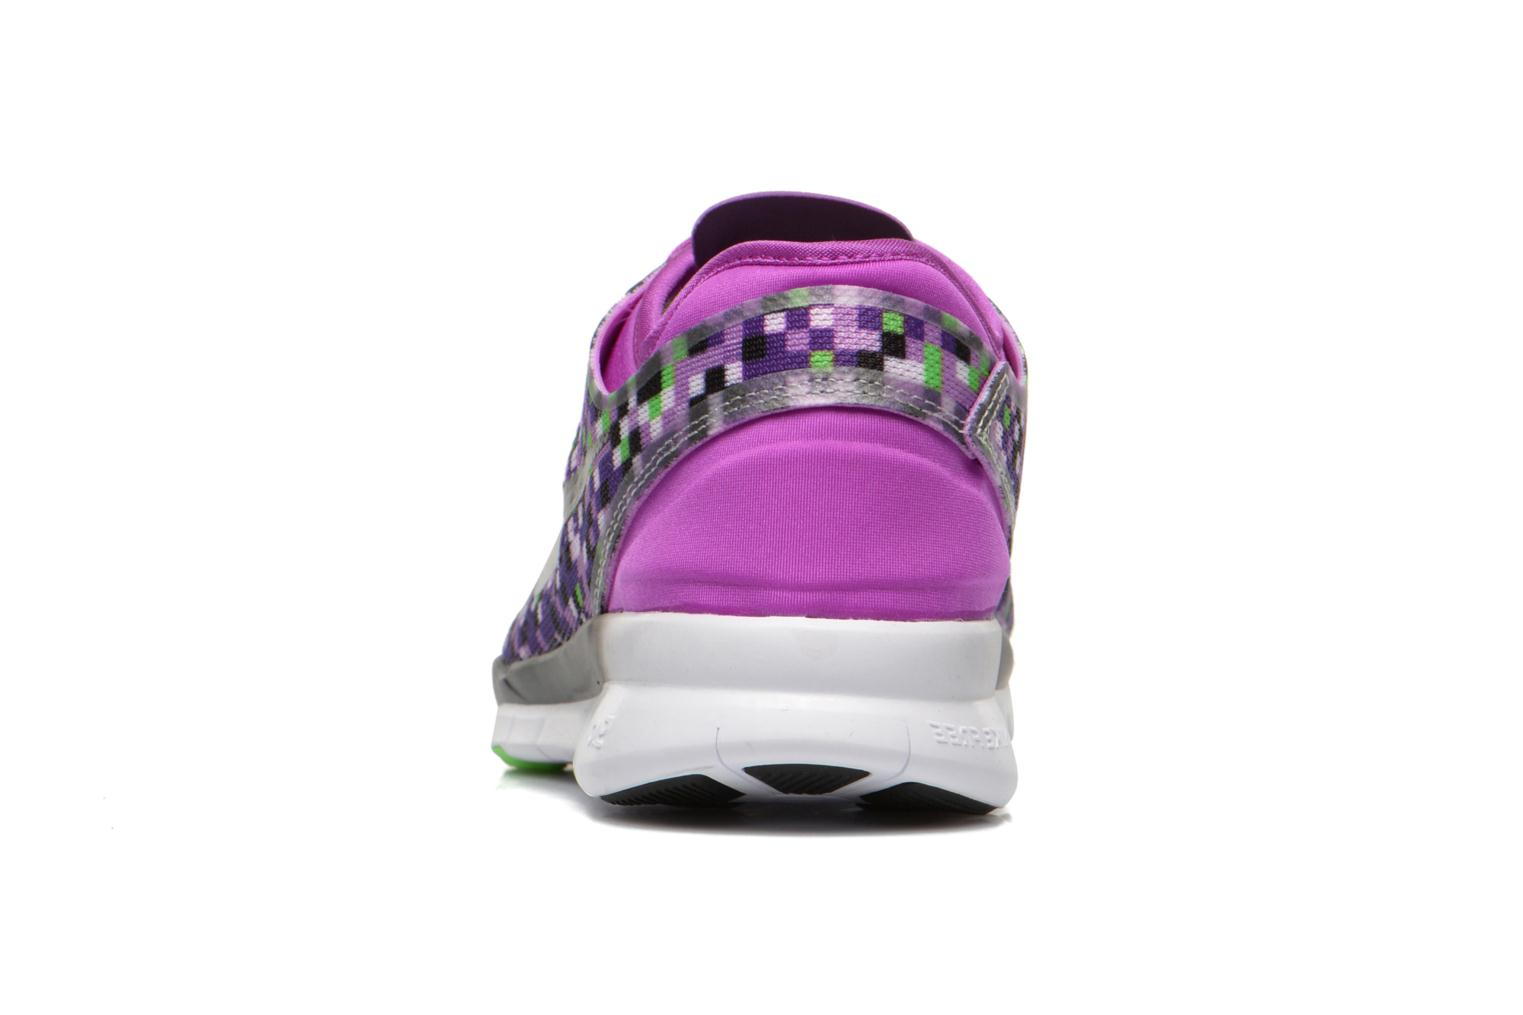 Wmns Nike Free 5.0 Tr Fit 5 Prt Vivid Purple/Black-Vltg Green